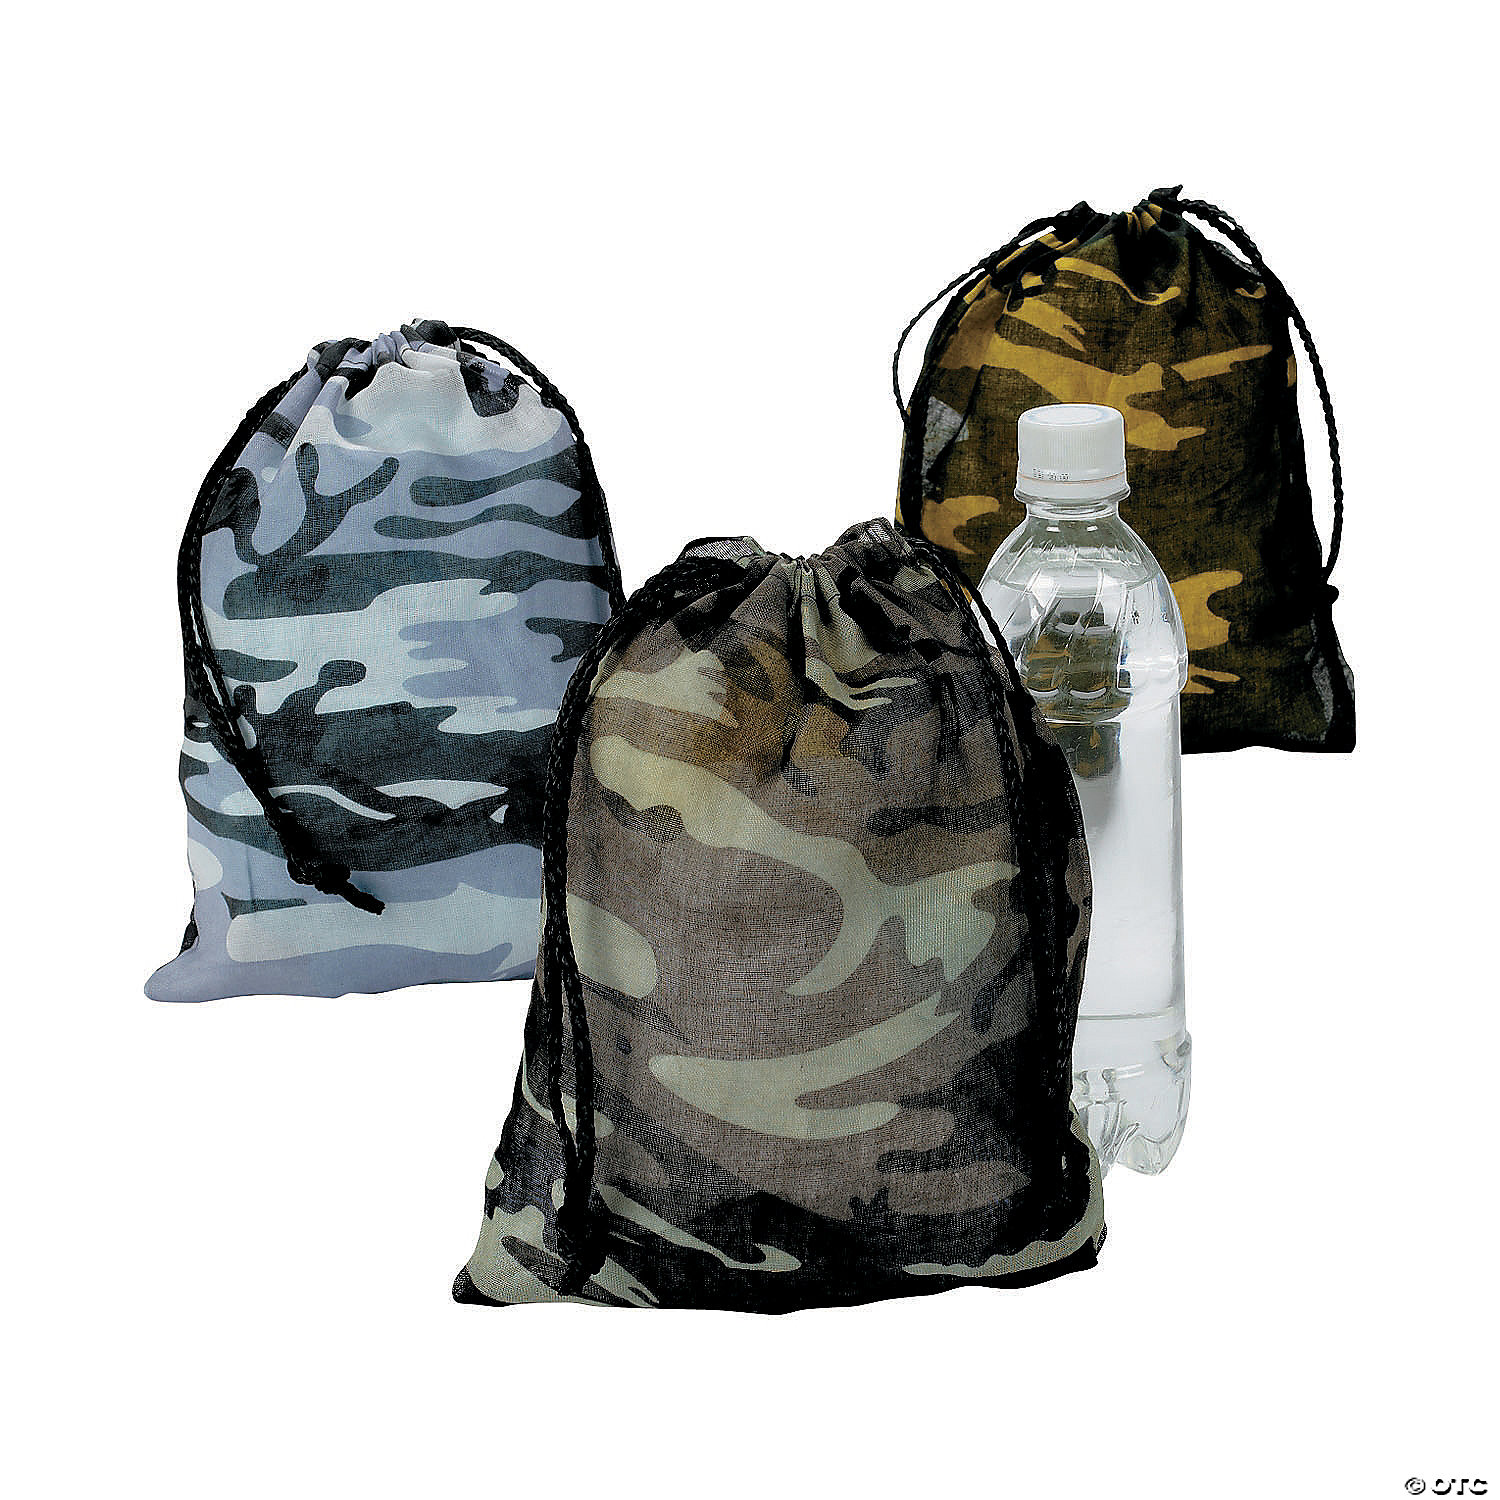 Blue Camouflage Party Decorations Save On Camouflage Oriental Trading